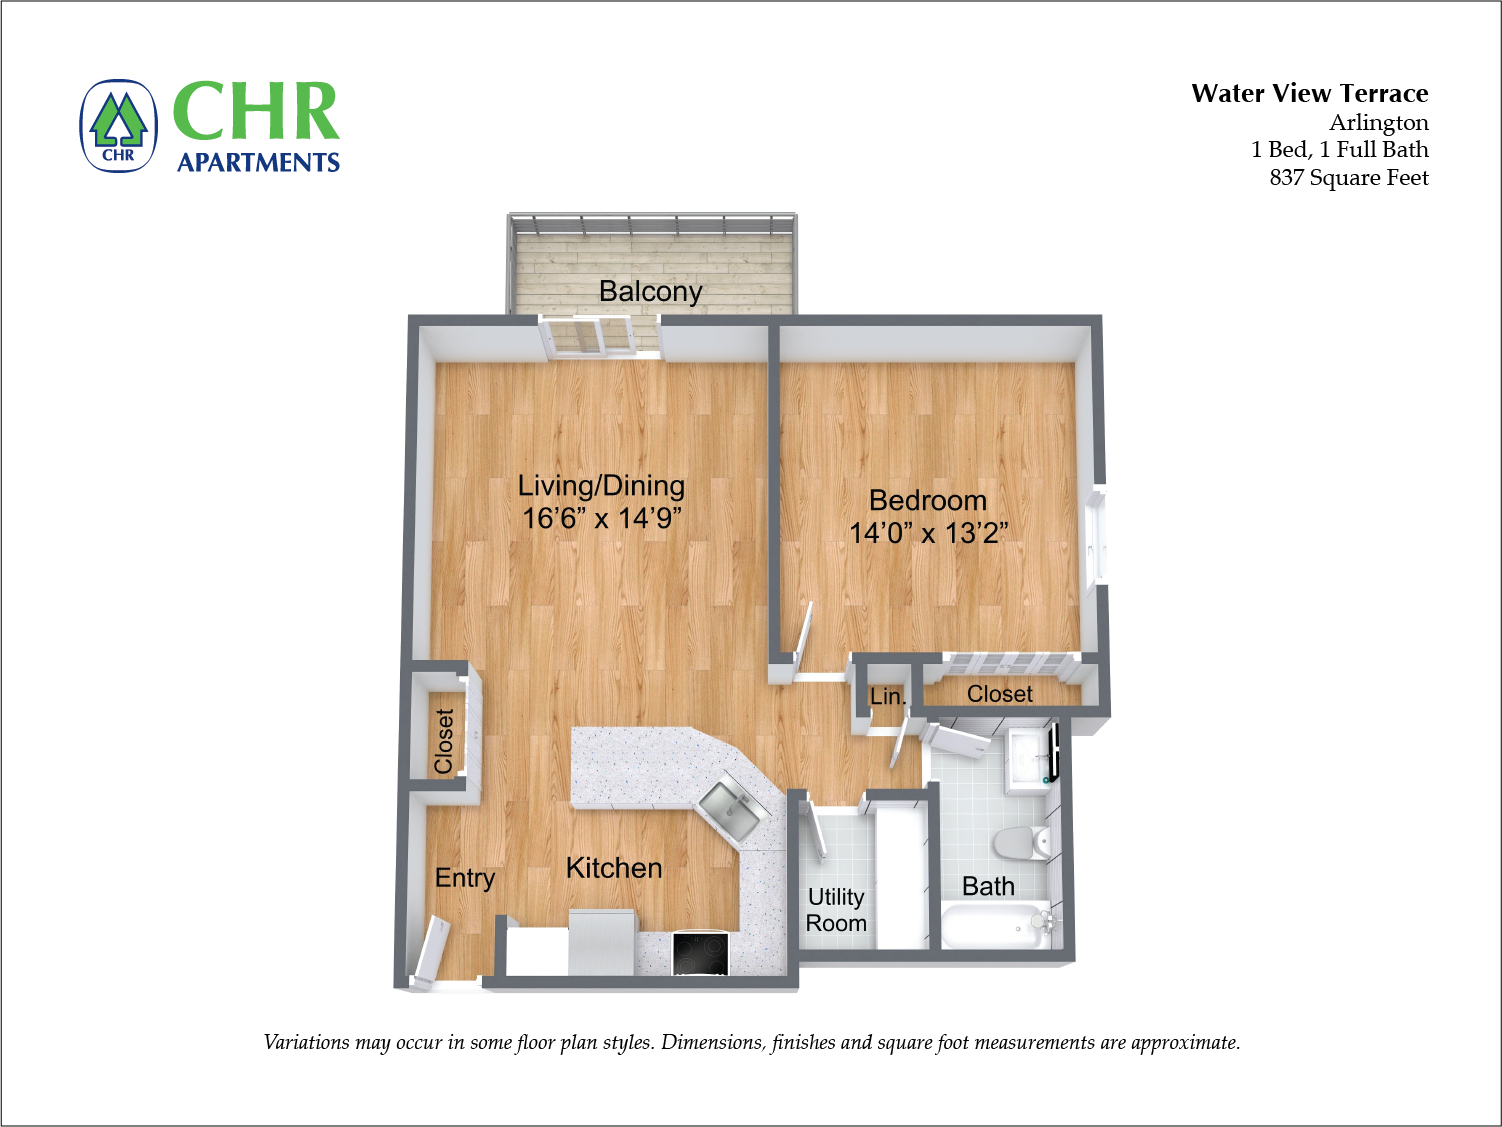 Floor plan 1 Bedroom with Balcony and Extra Closets image 3